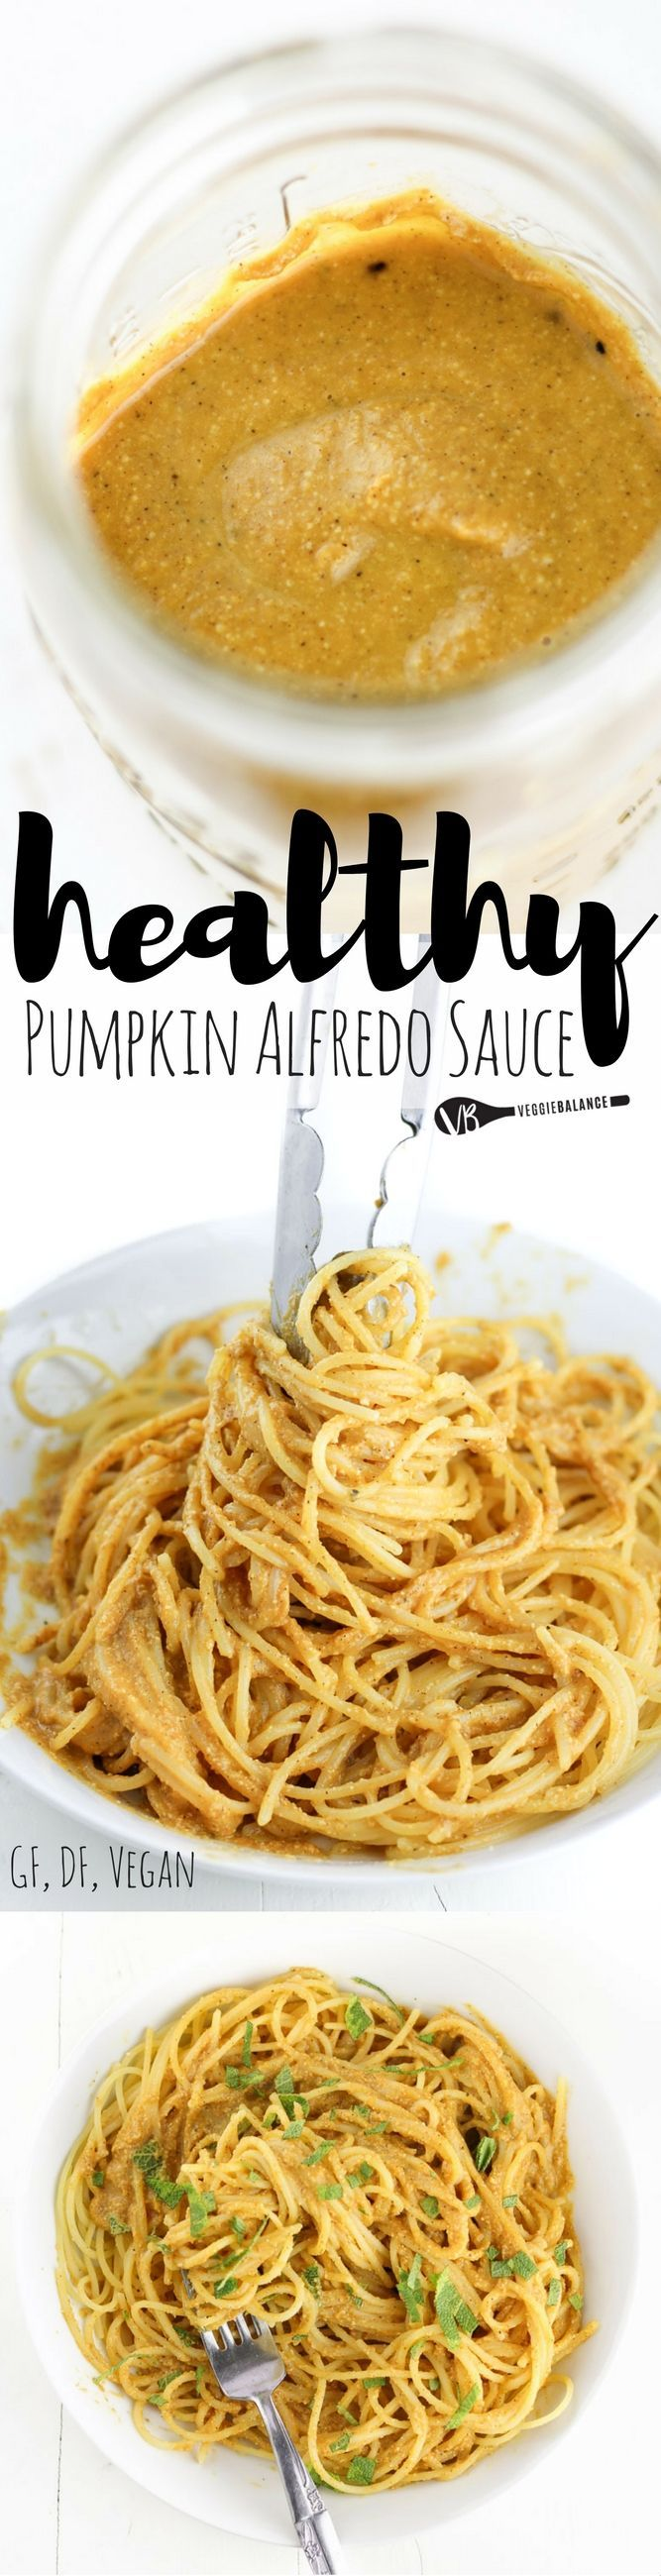 Vegan Pumpkin Alfredo Sauce recipe made with 9-Ingredients including fresh sage from the garden. Made in less than 20 minutes for 100% satisfaction of those pumpkin cravings! #FamilyPastaTime /barillaus/ #ad